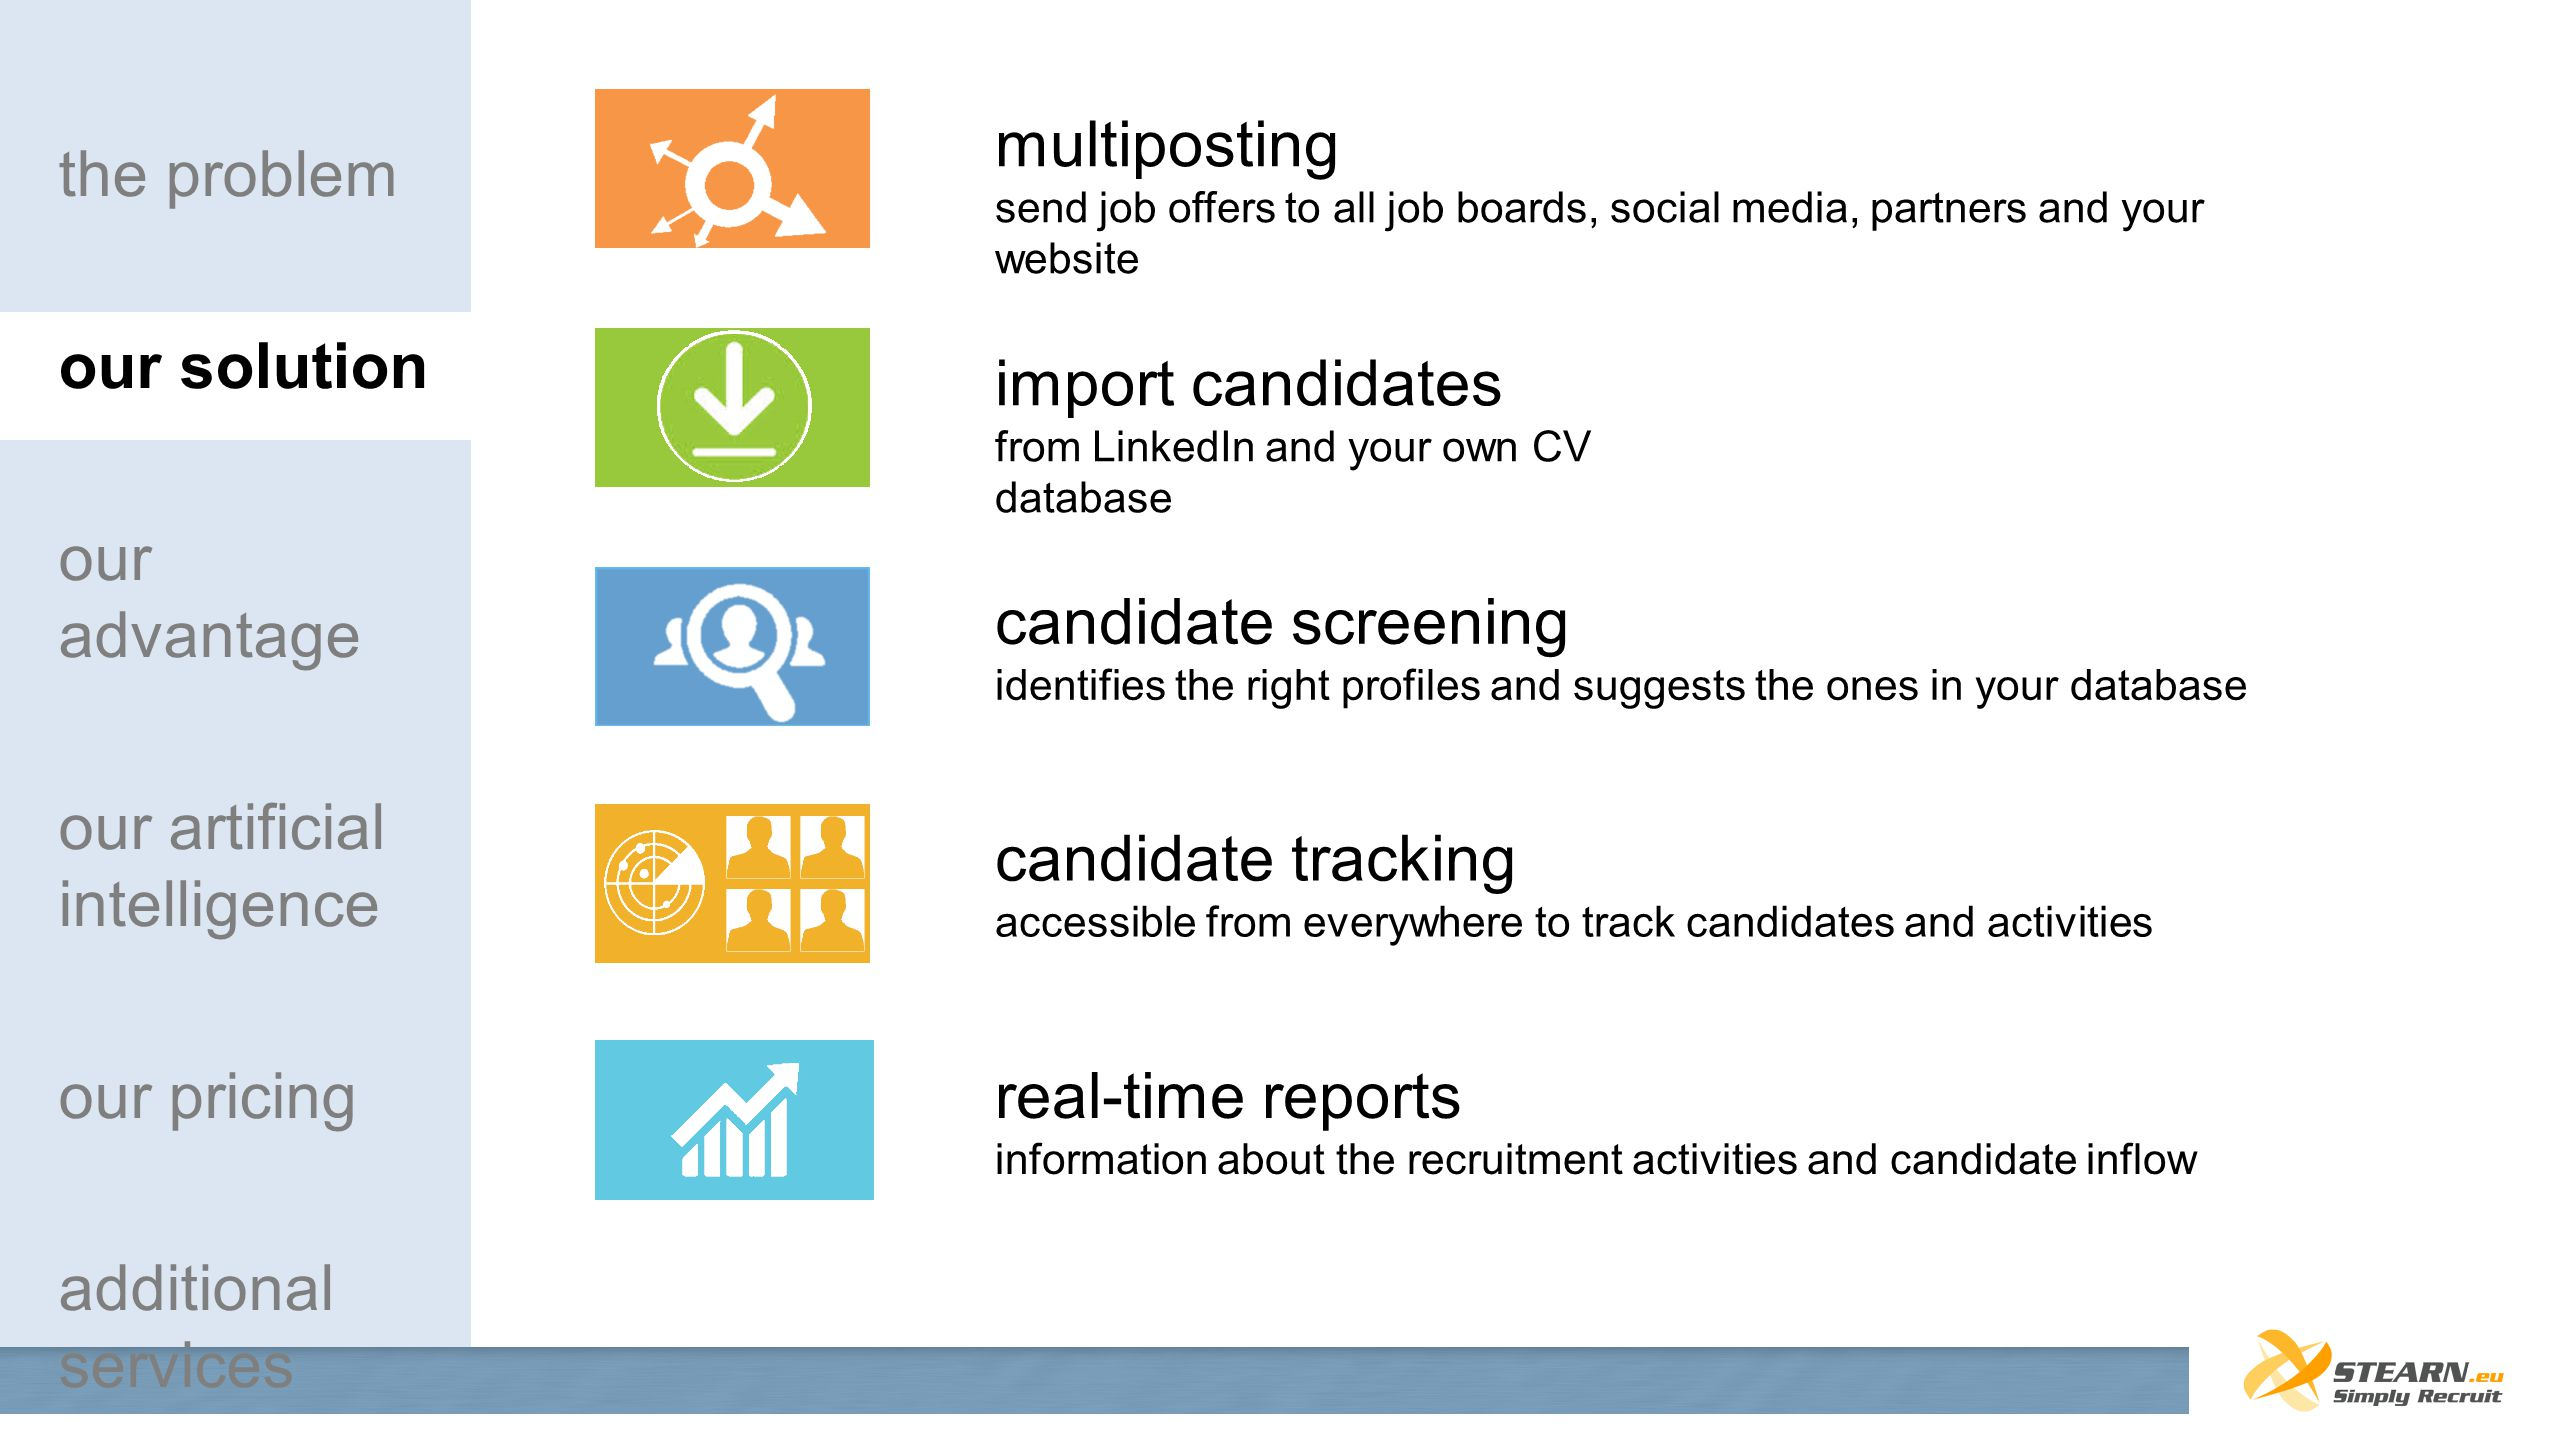 multiposting send job offers to all job boards, social media, partners and your website candidate screening identifies the right profiles and suggests